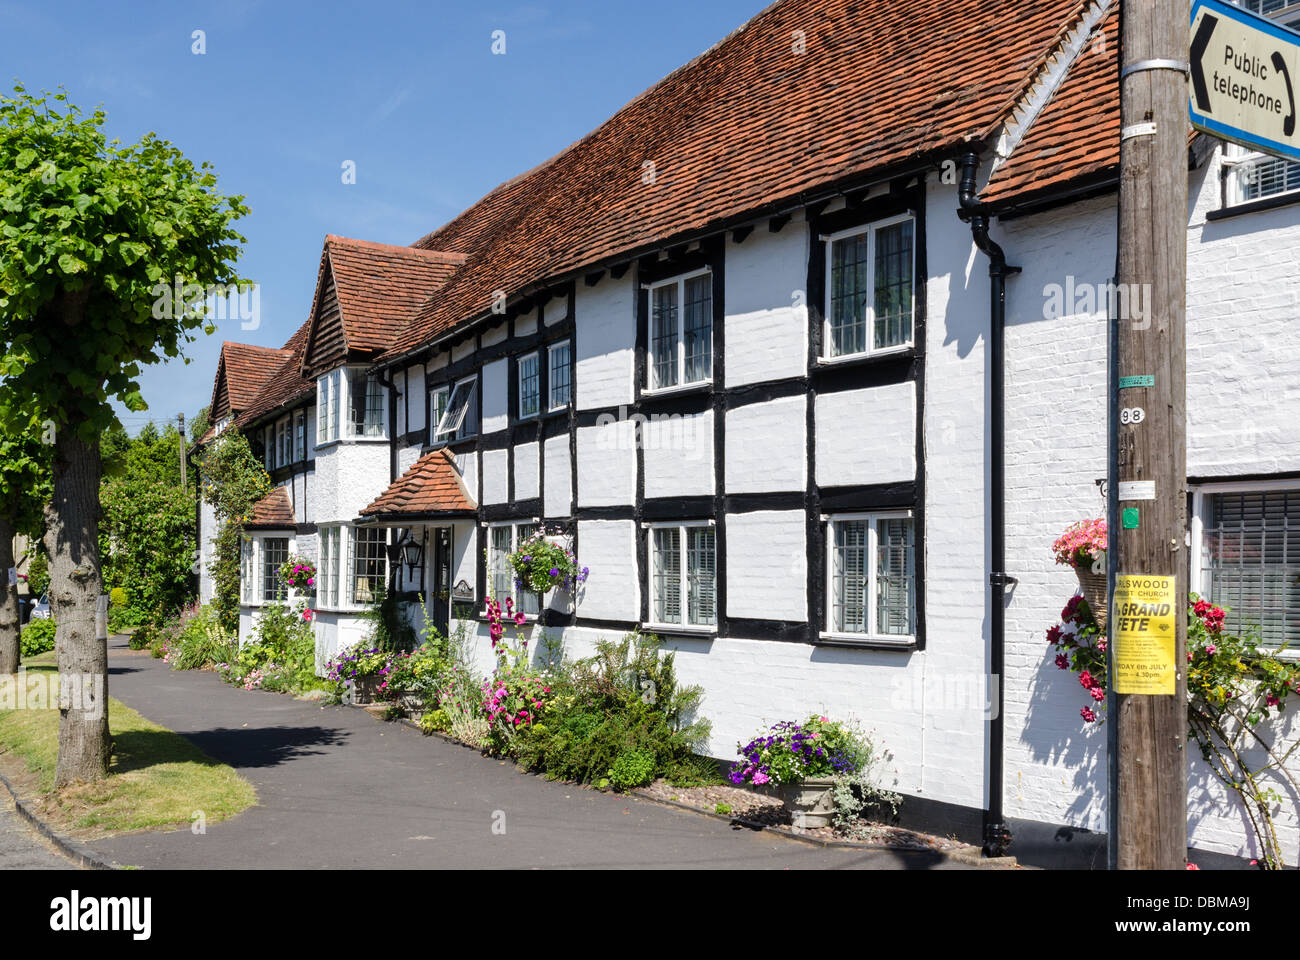 Black and white cottages in the Warwickshire village of Tanworth in Arden - Stock Image